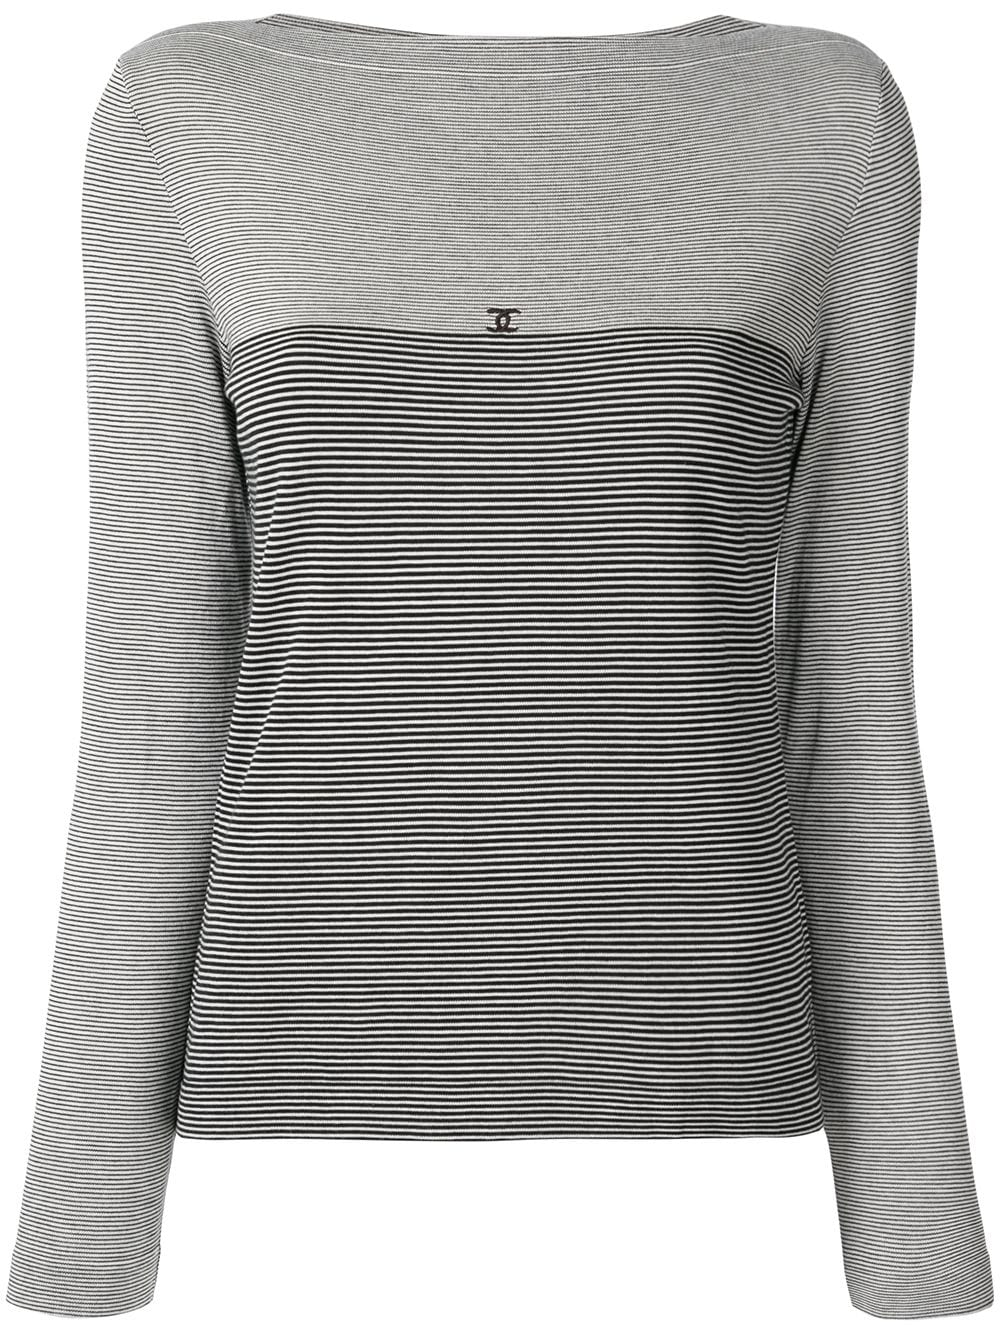 Chanel Pre-Owned 1997 slash neck striped blouse - Grey